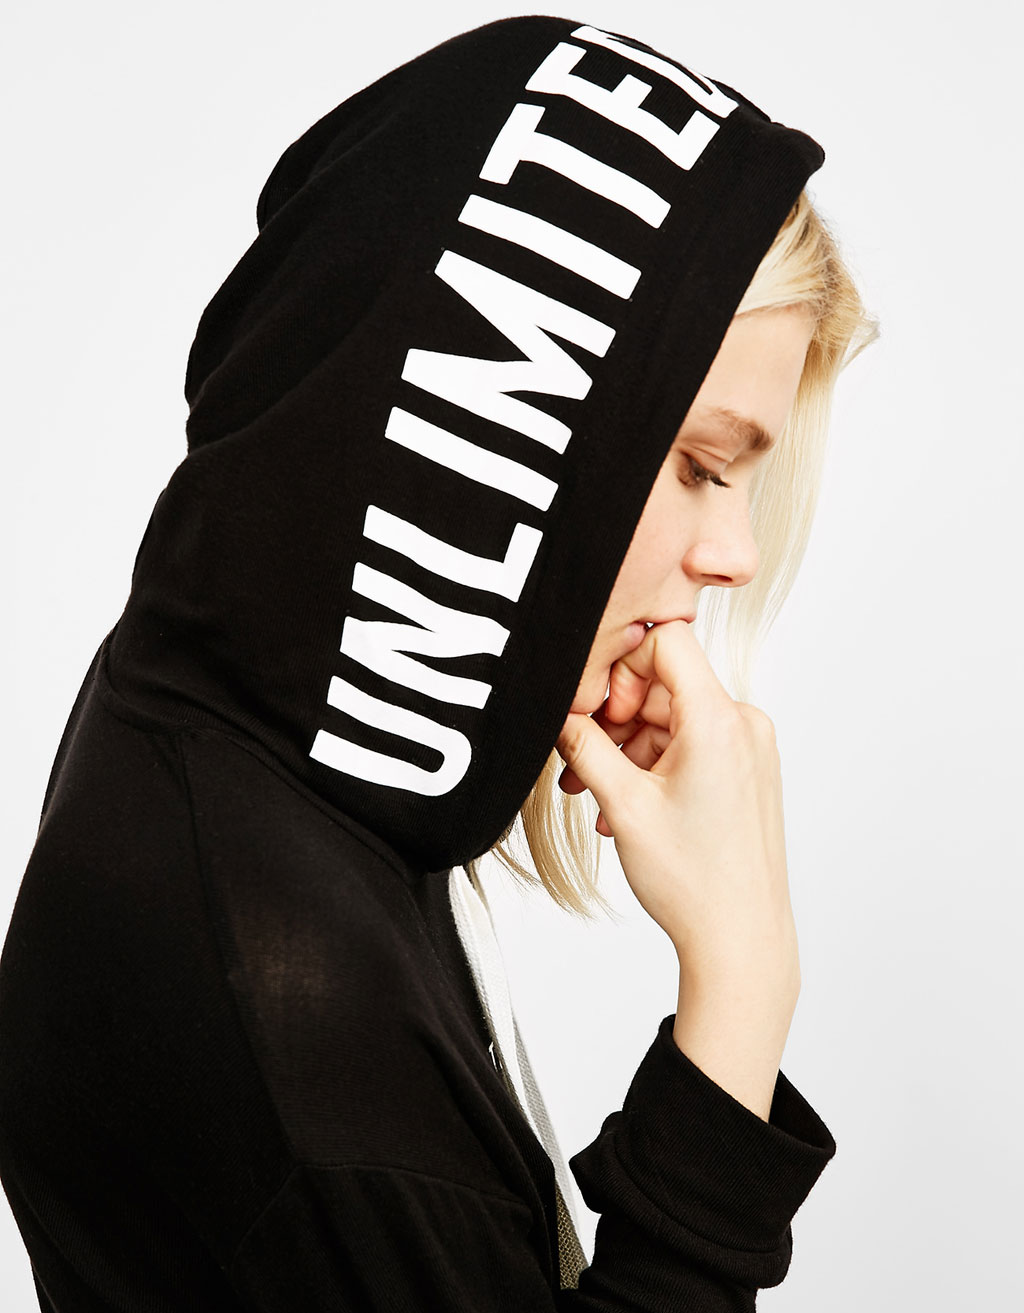 Hooded sweatshirt with text